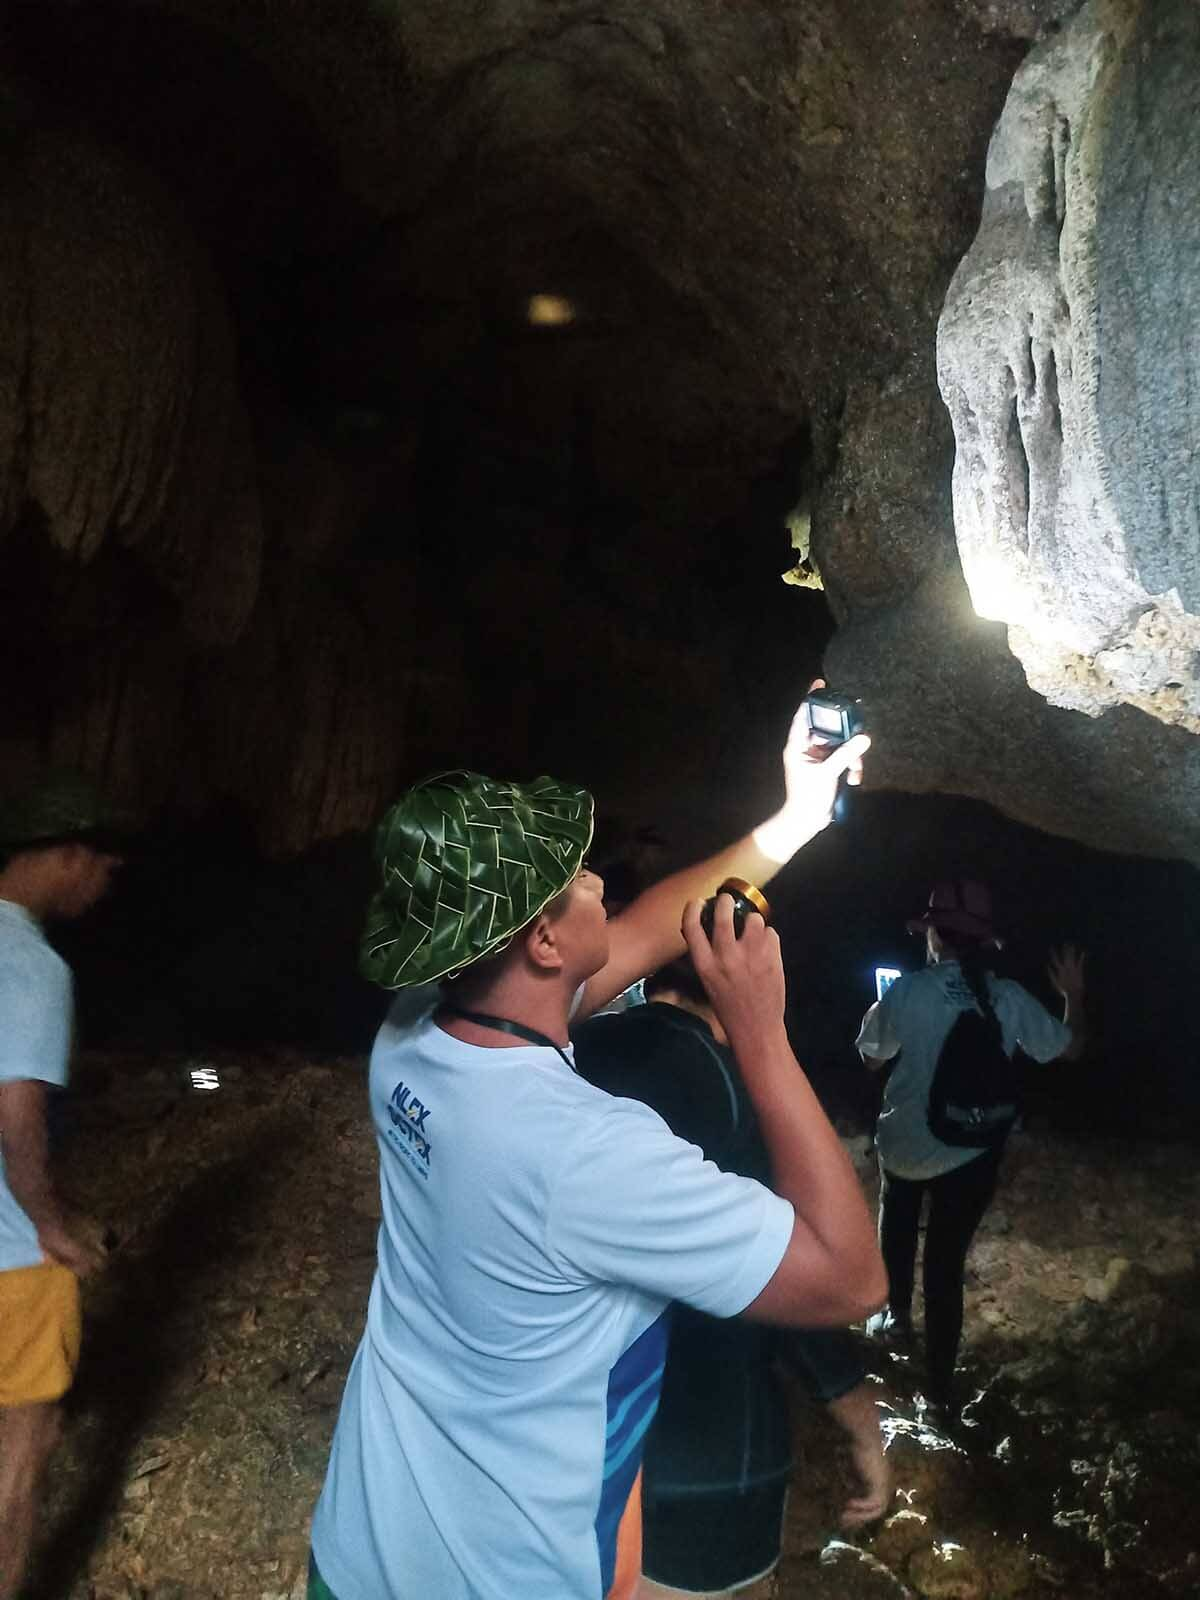 pangasinan travel guide - nalsoc cave